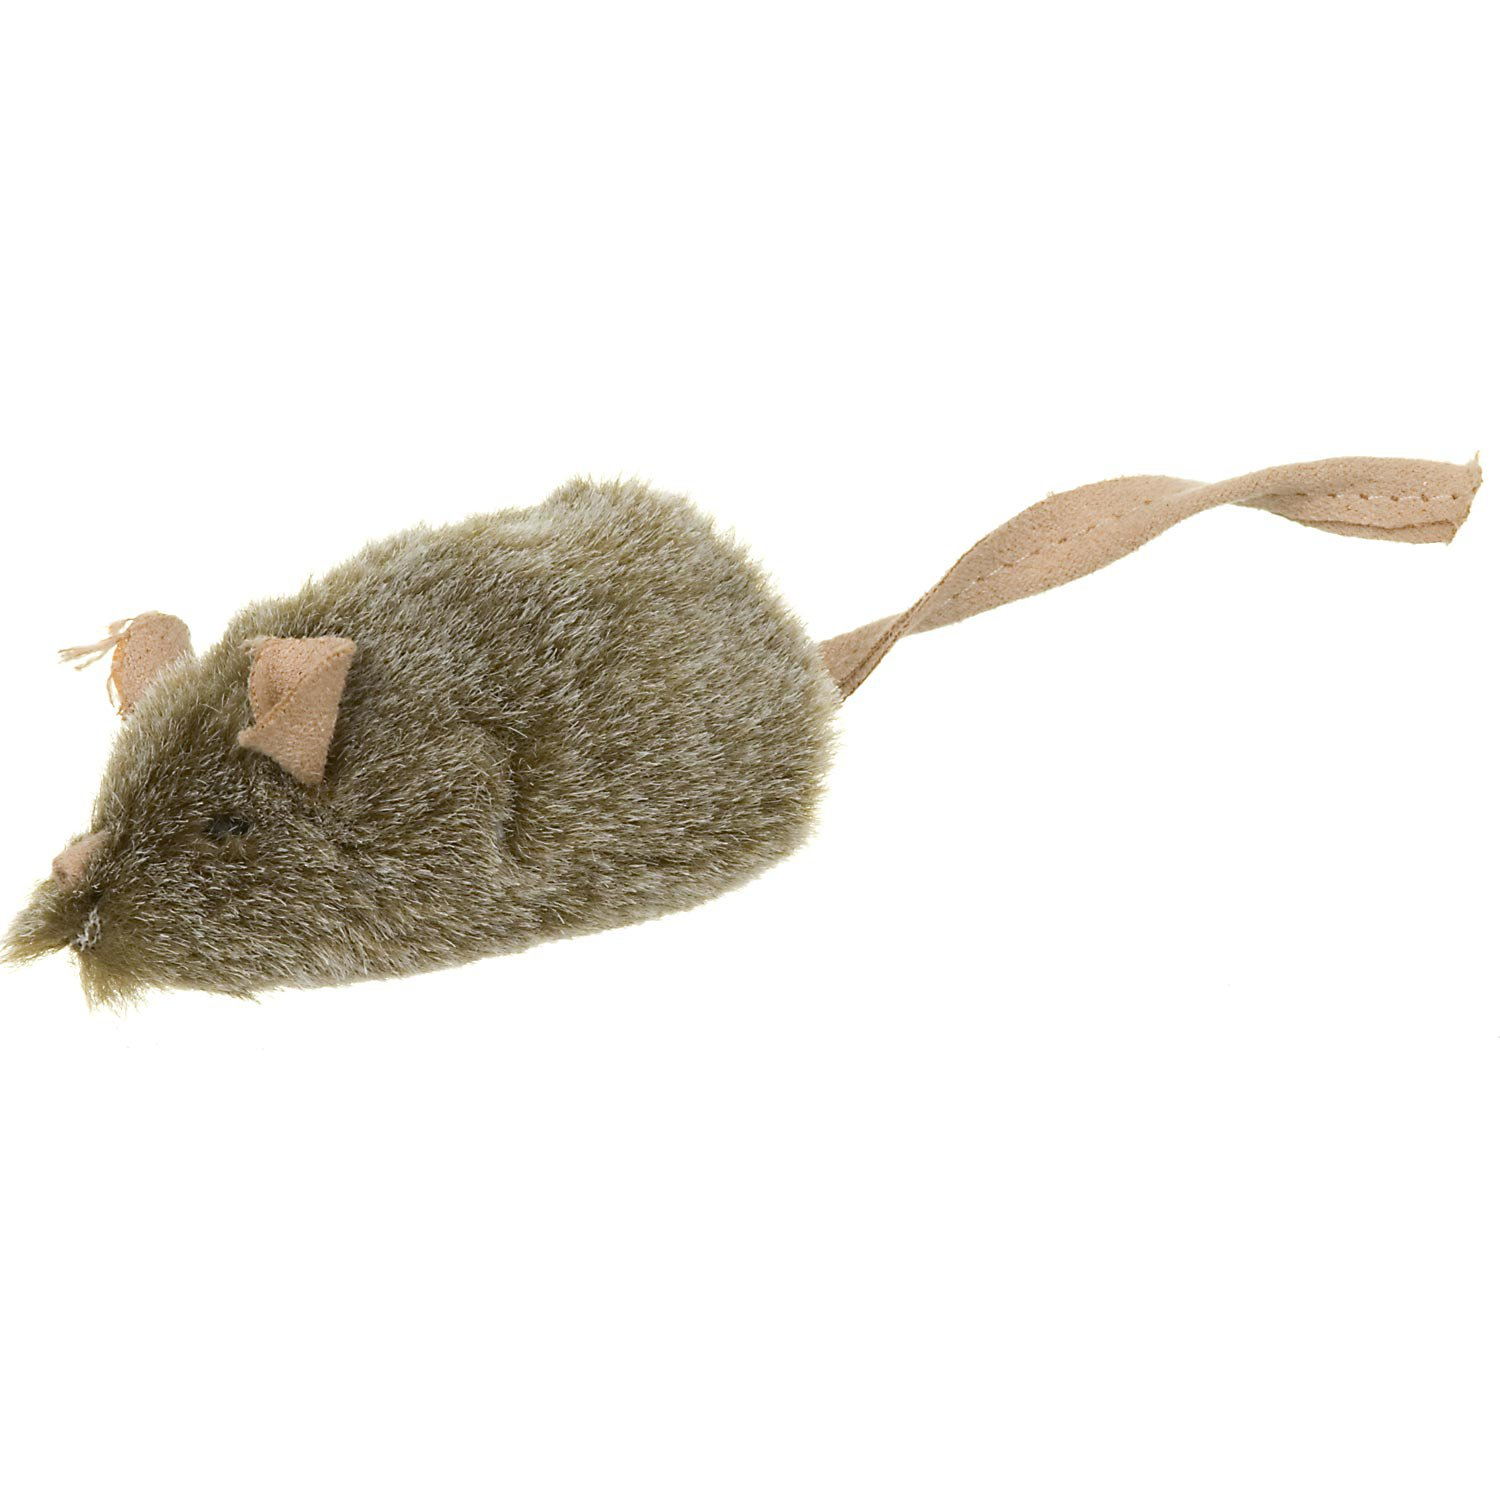 Cat Mouse Toy Diy